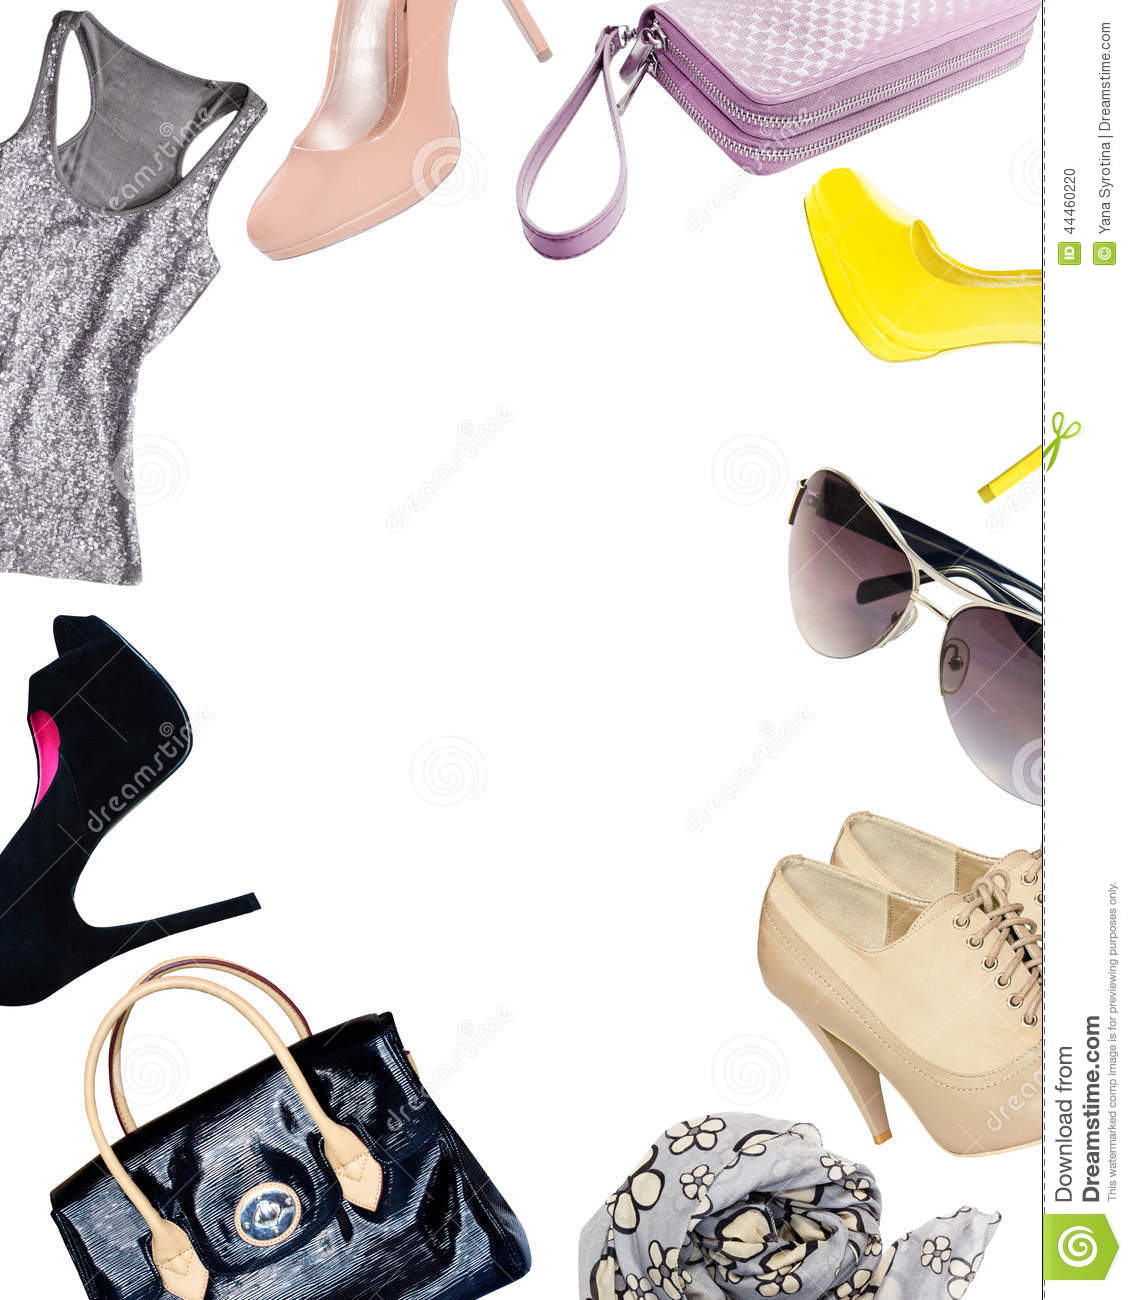 All Woman Loves: Bags and Shoes!